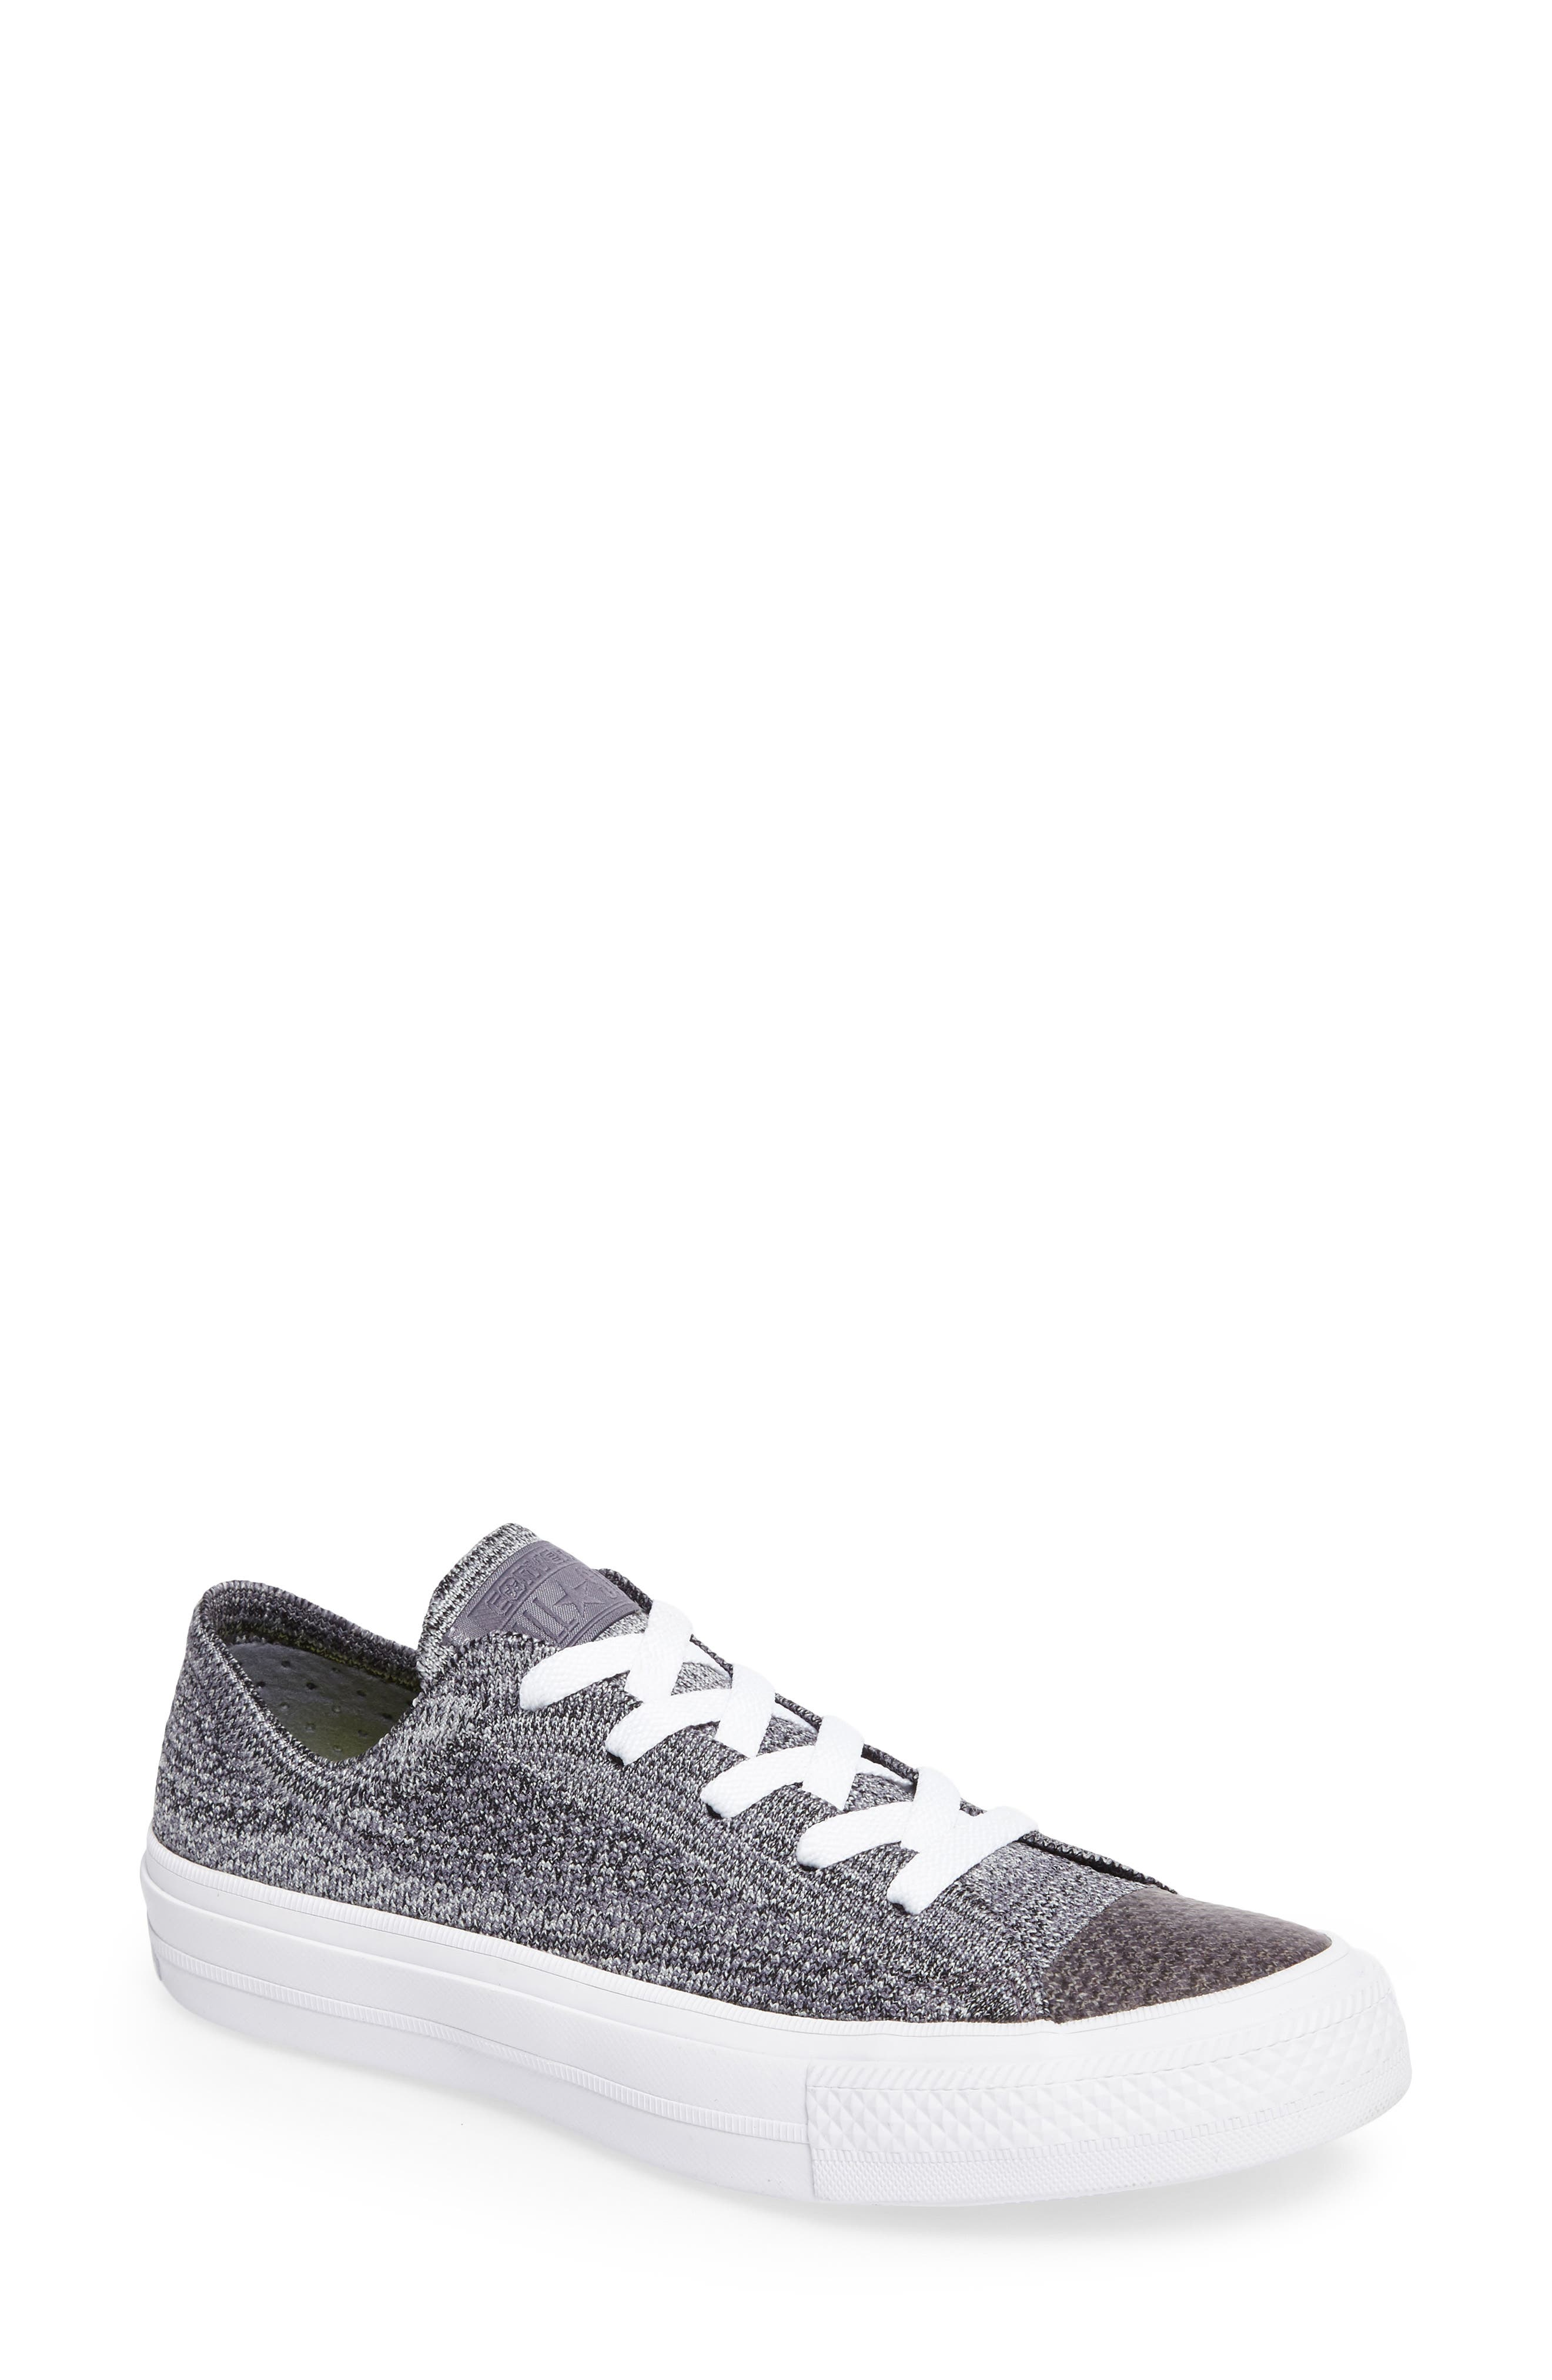 All Star<sup>®</sup> Flyknit Low Sneaker,                             Main thumbnail 1, color,                             027